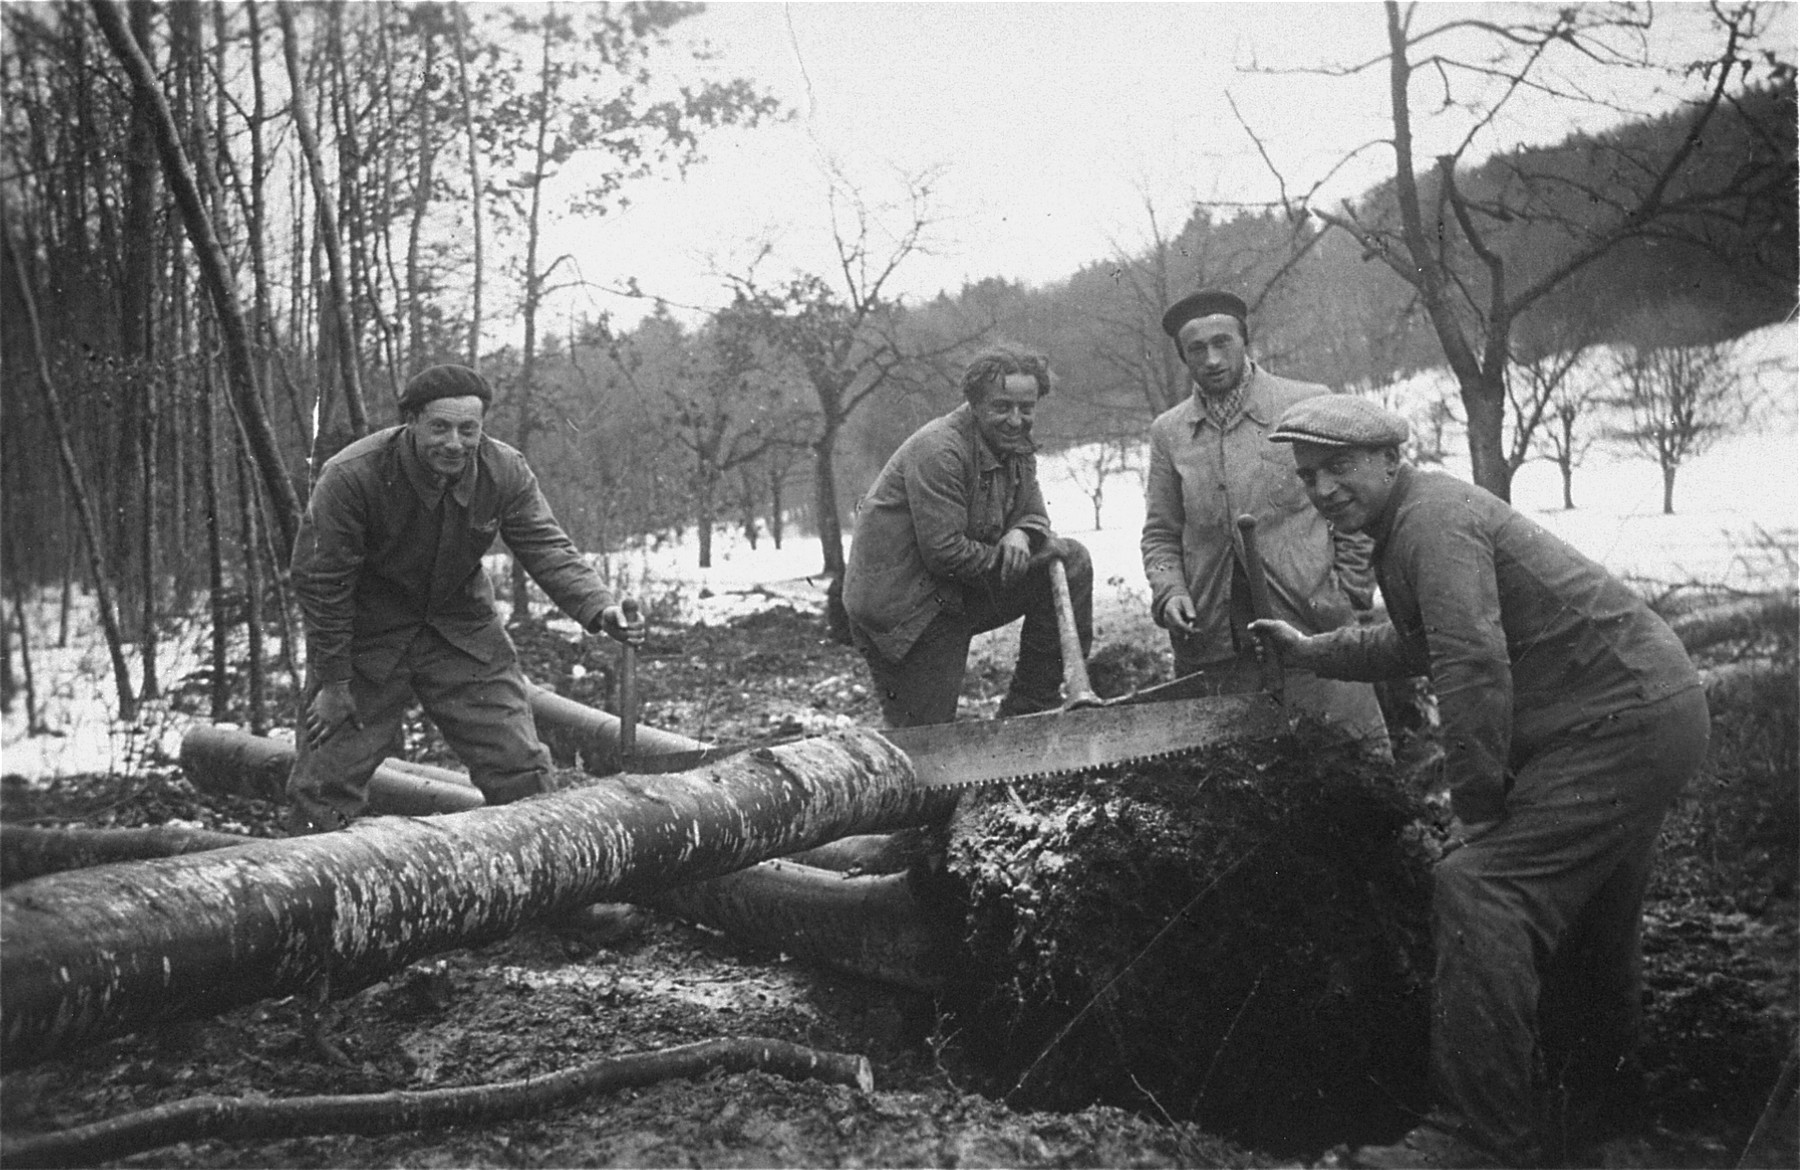 Jewish refugees at work in a Swiss labor camp, sawing a tree trunk.